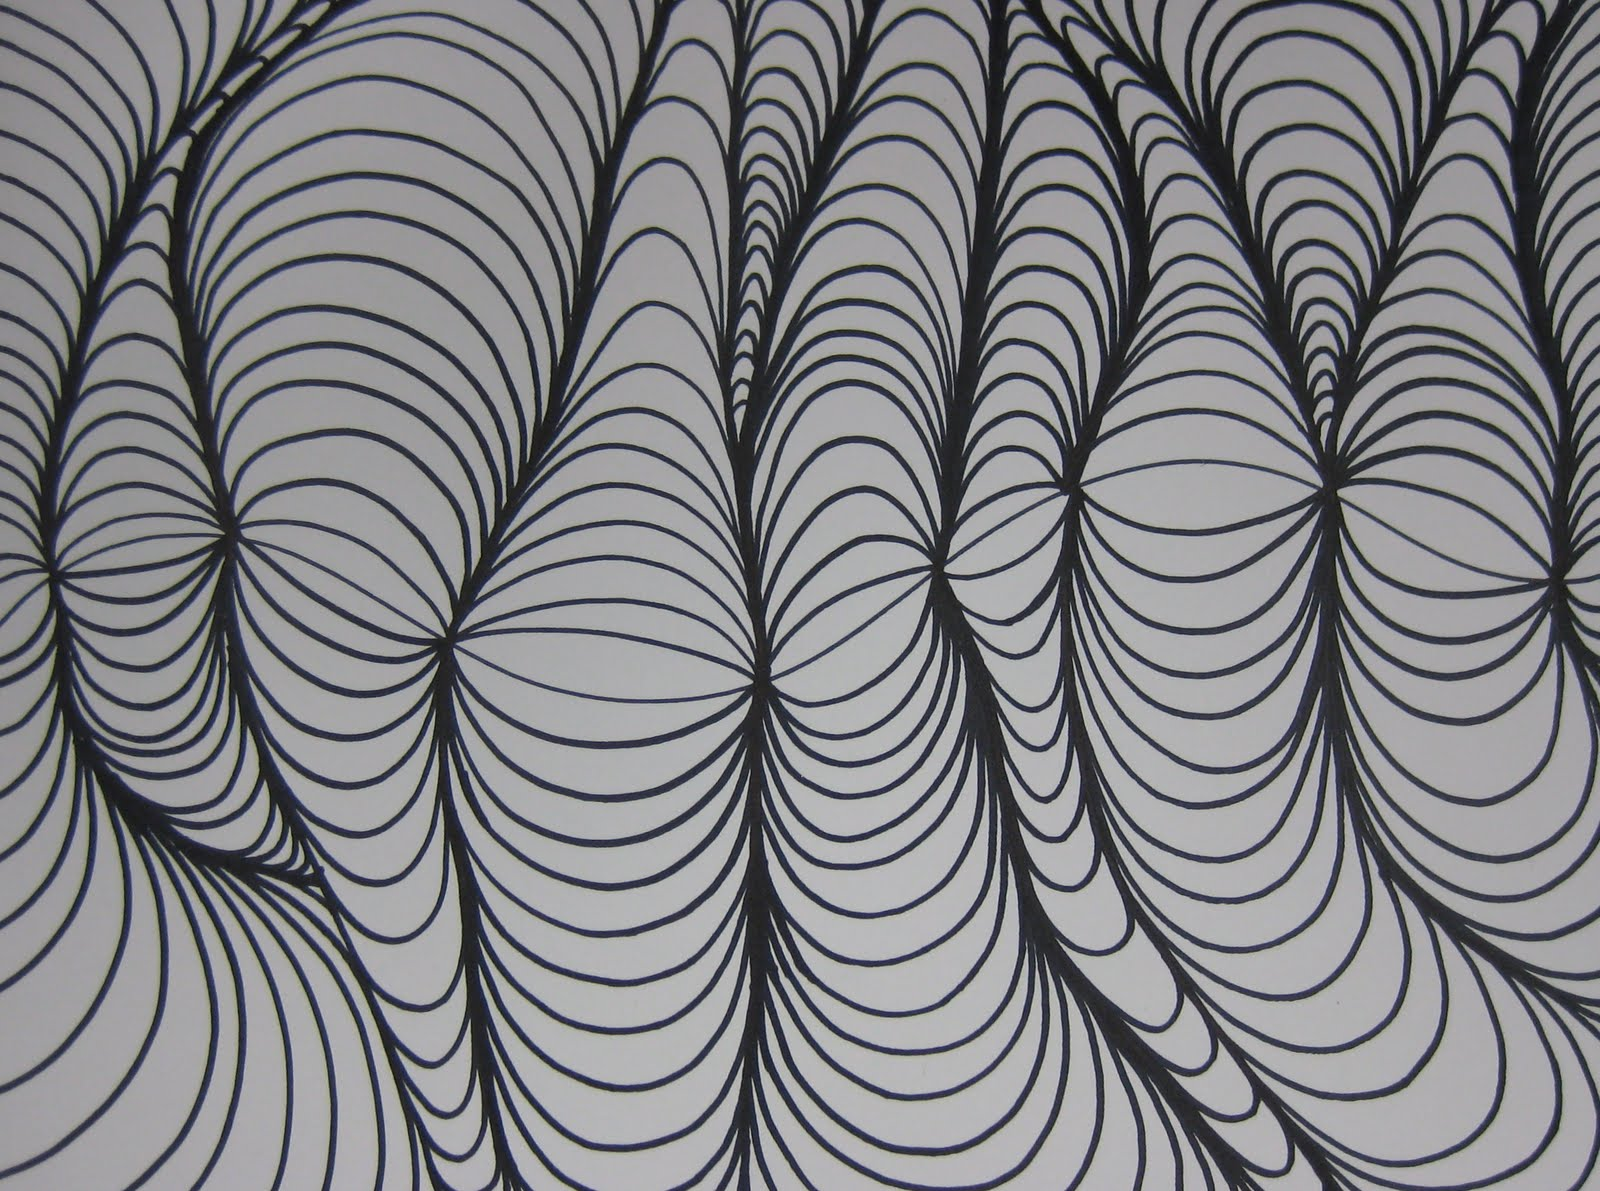 Line Design Art Project : Line designs with shading teachkidsart